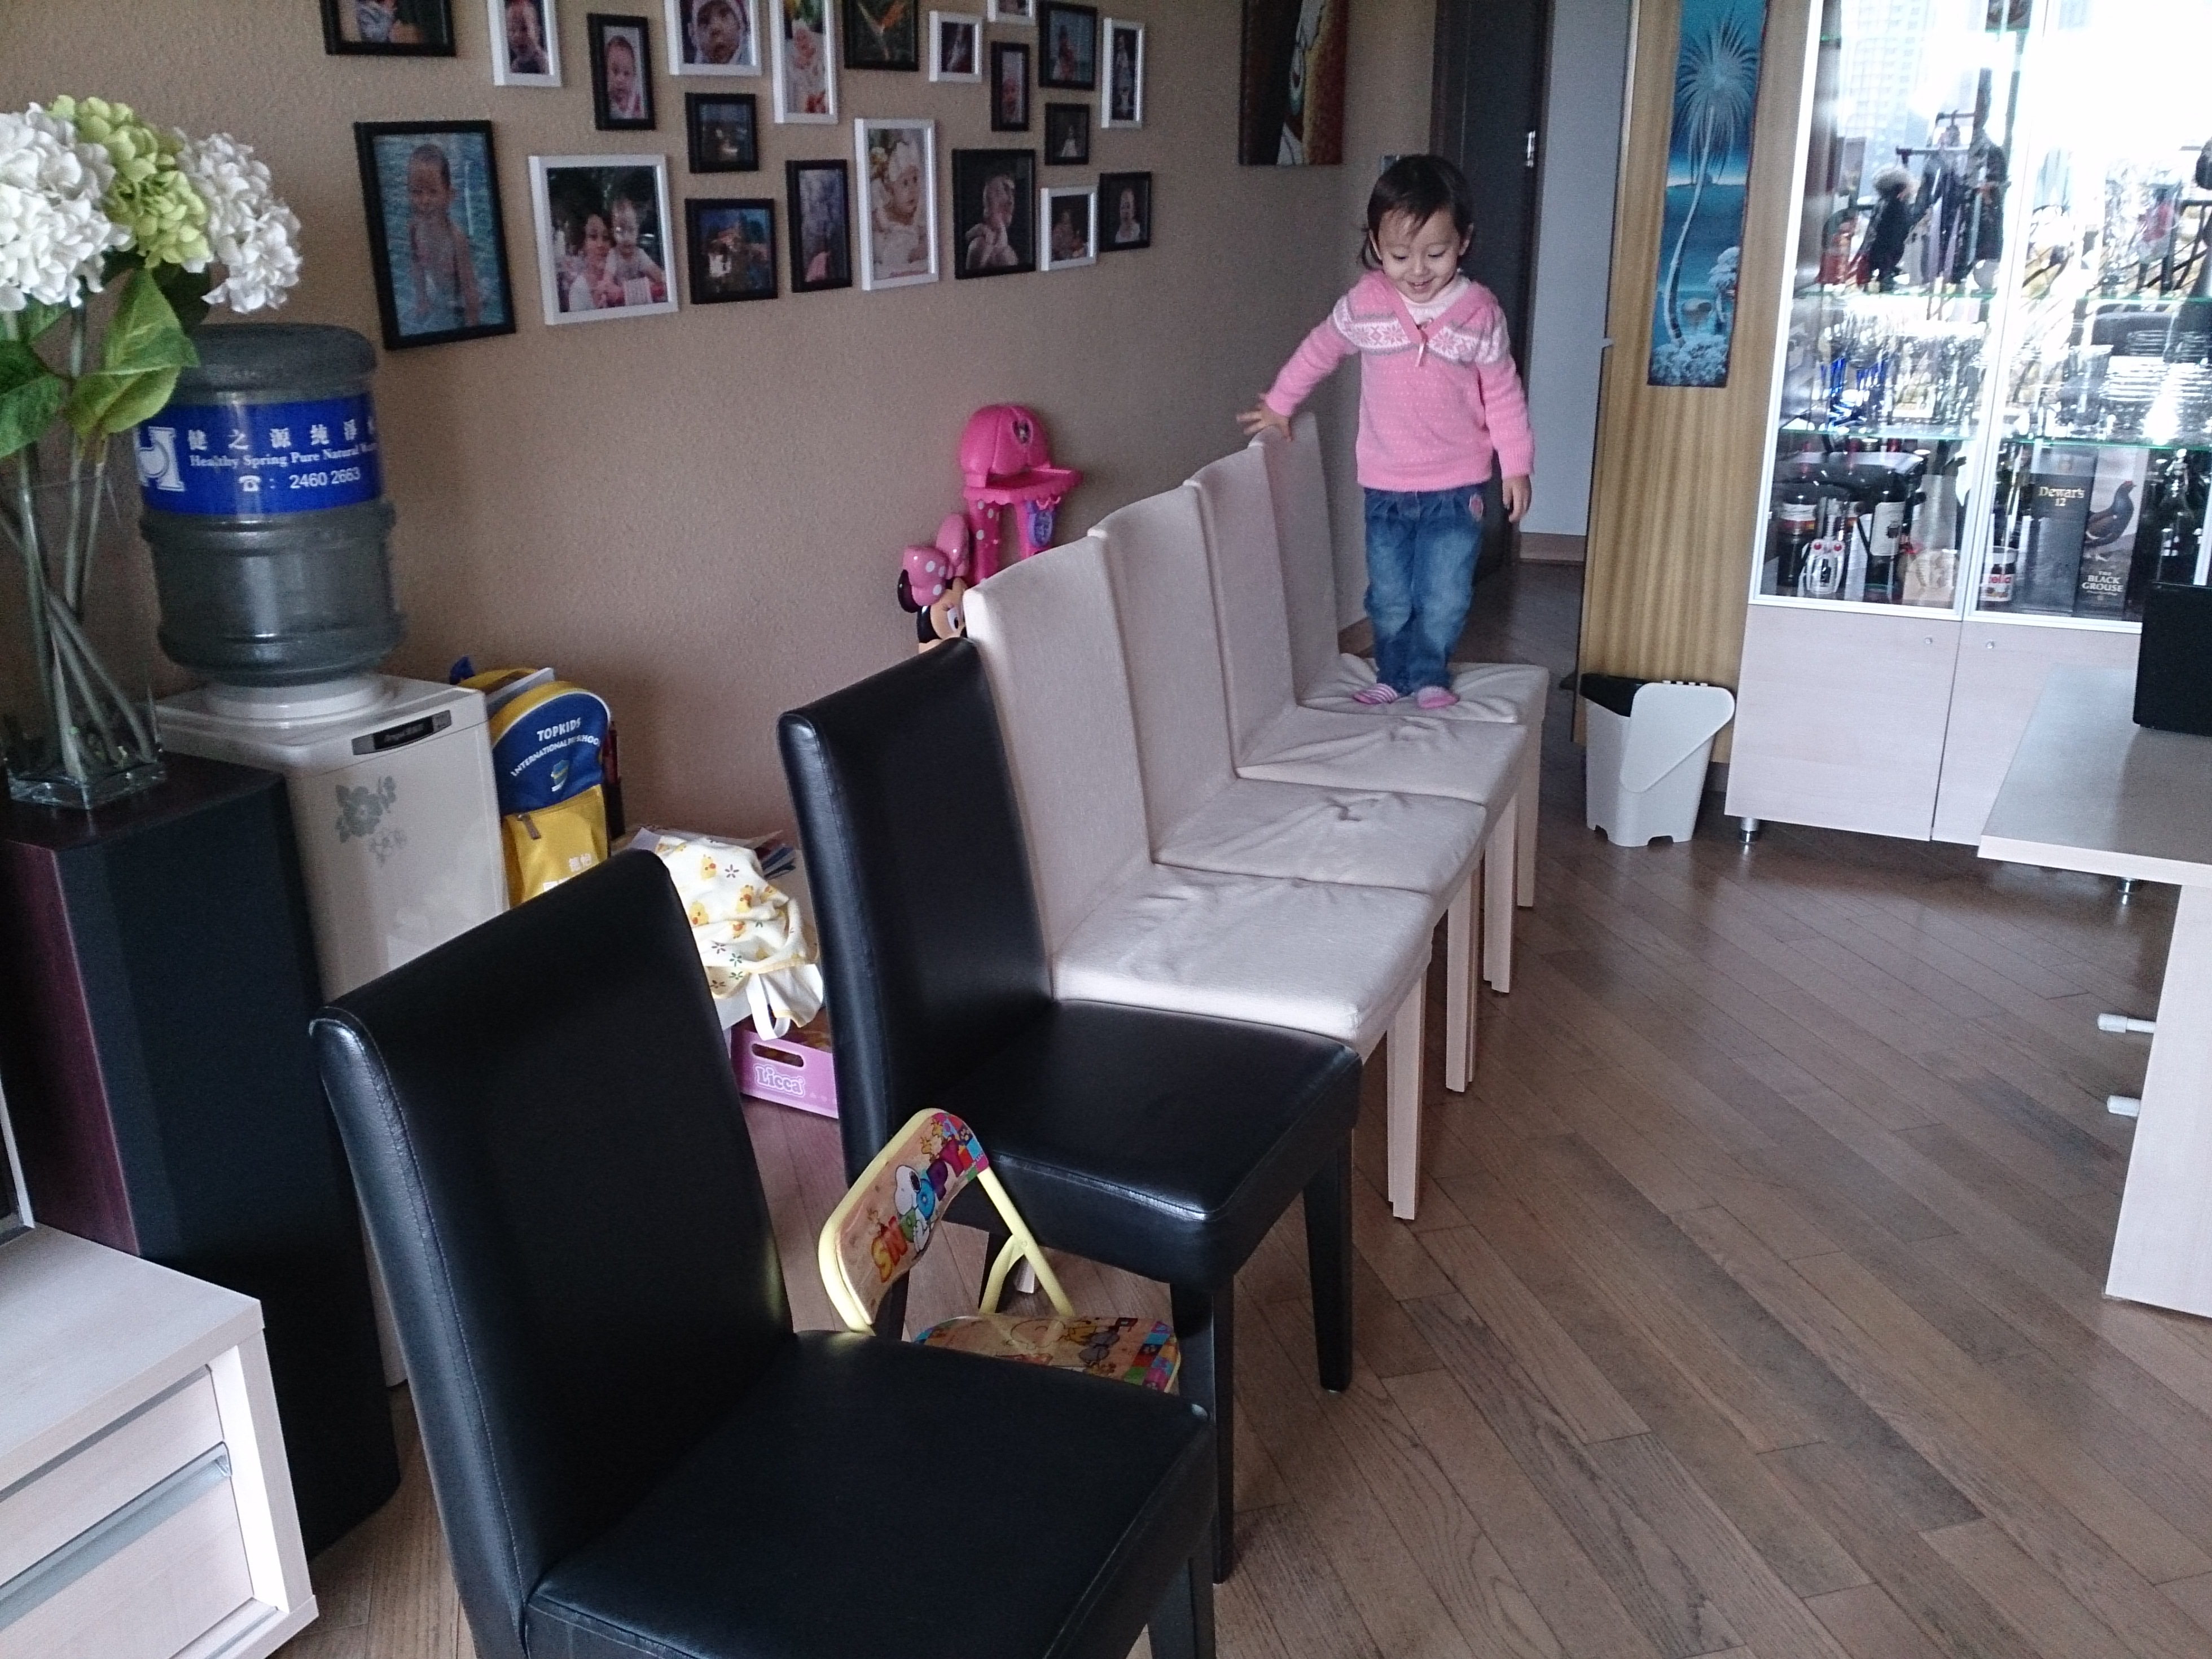 Kylie jumping chairs